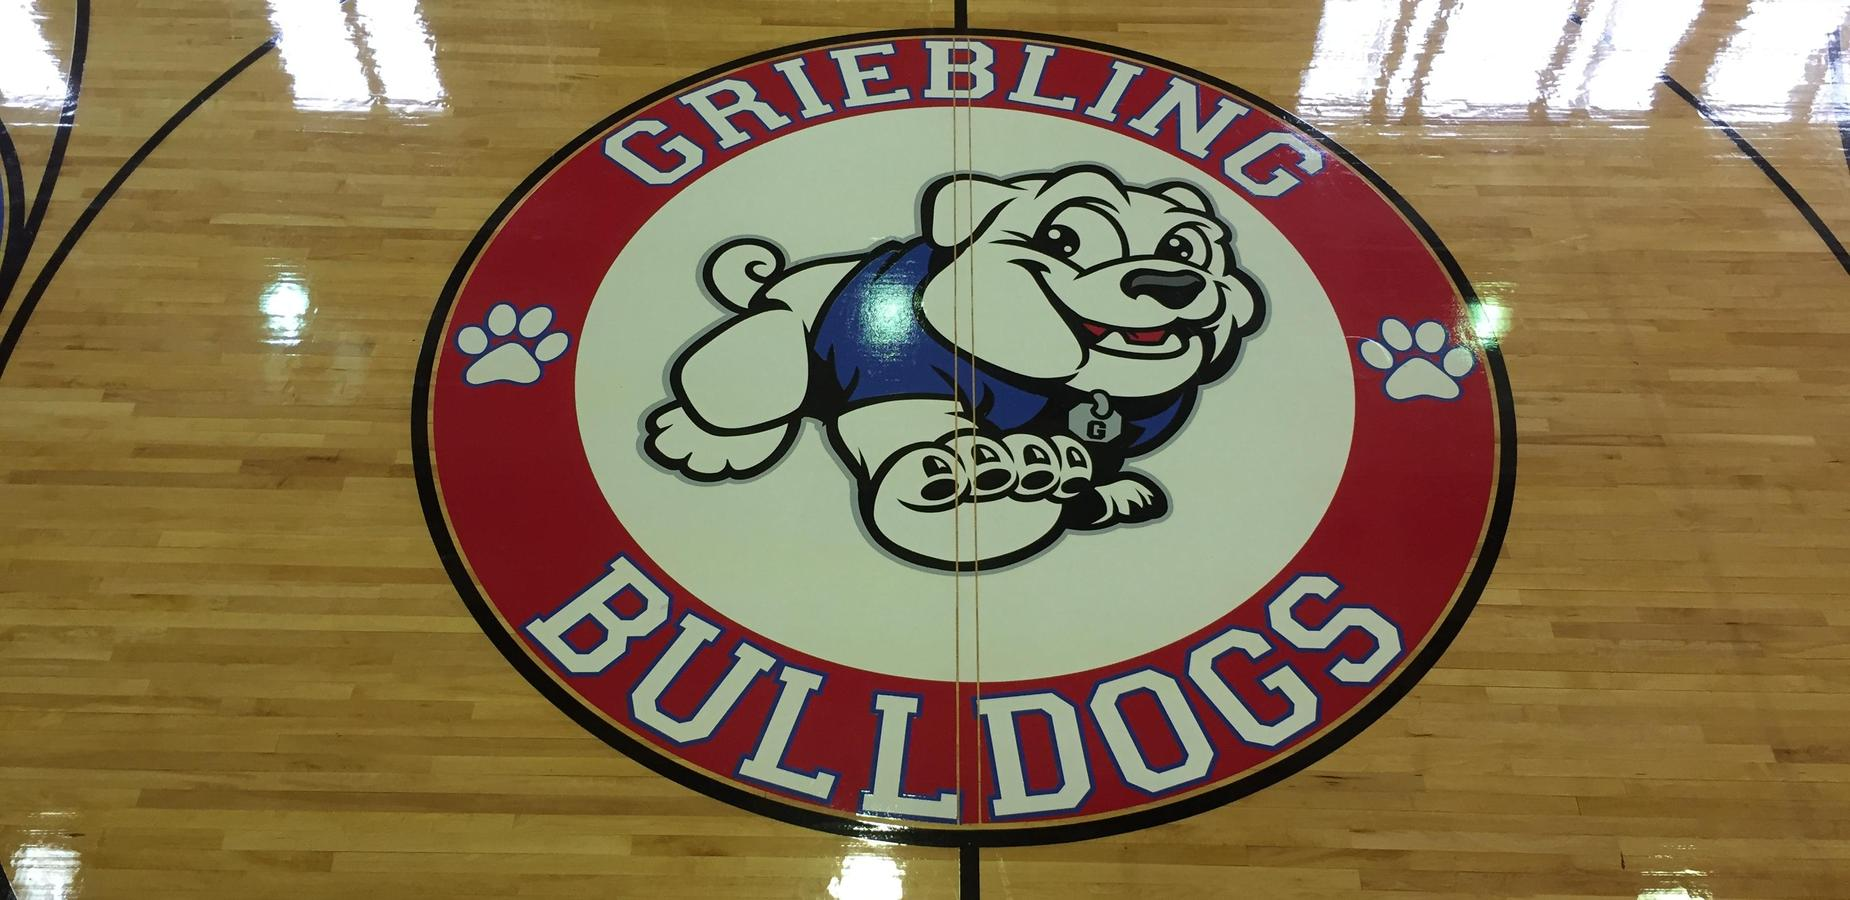 Griebling Bulldogs